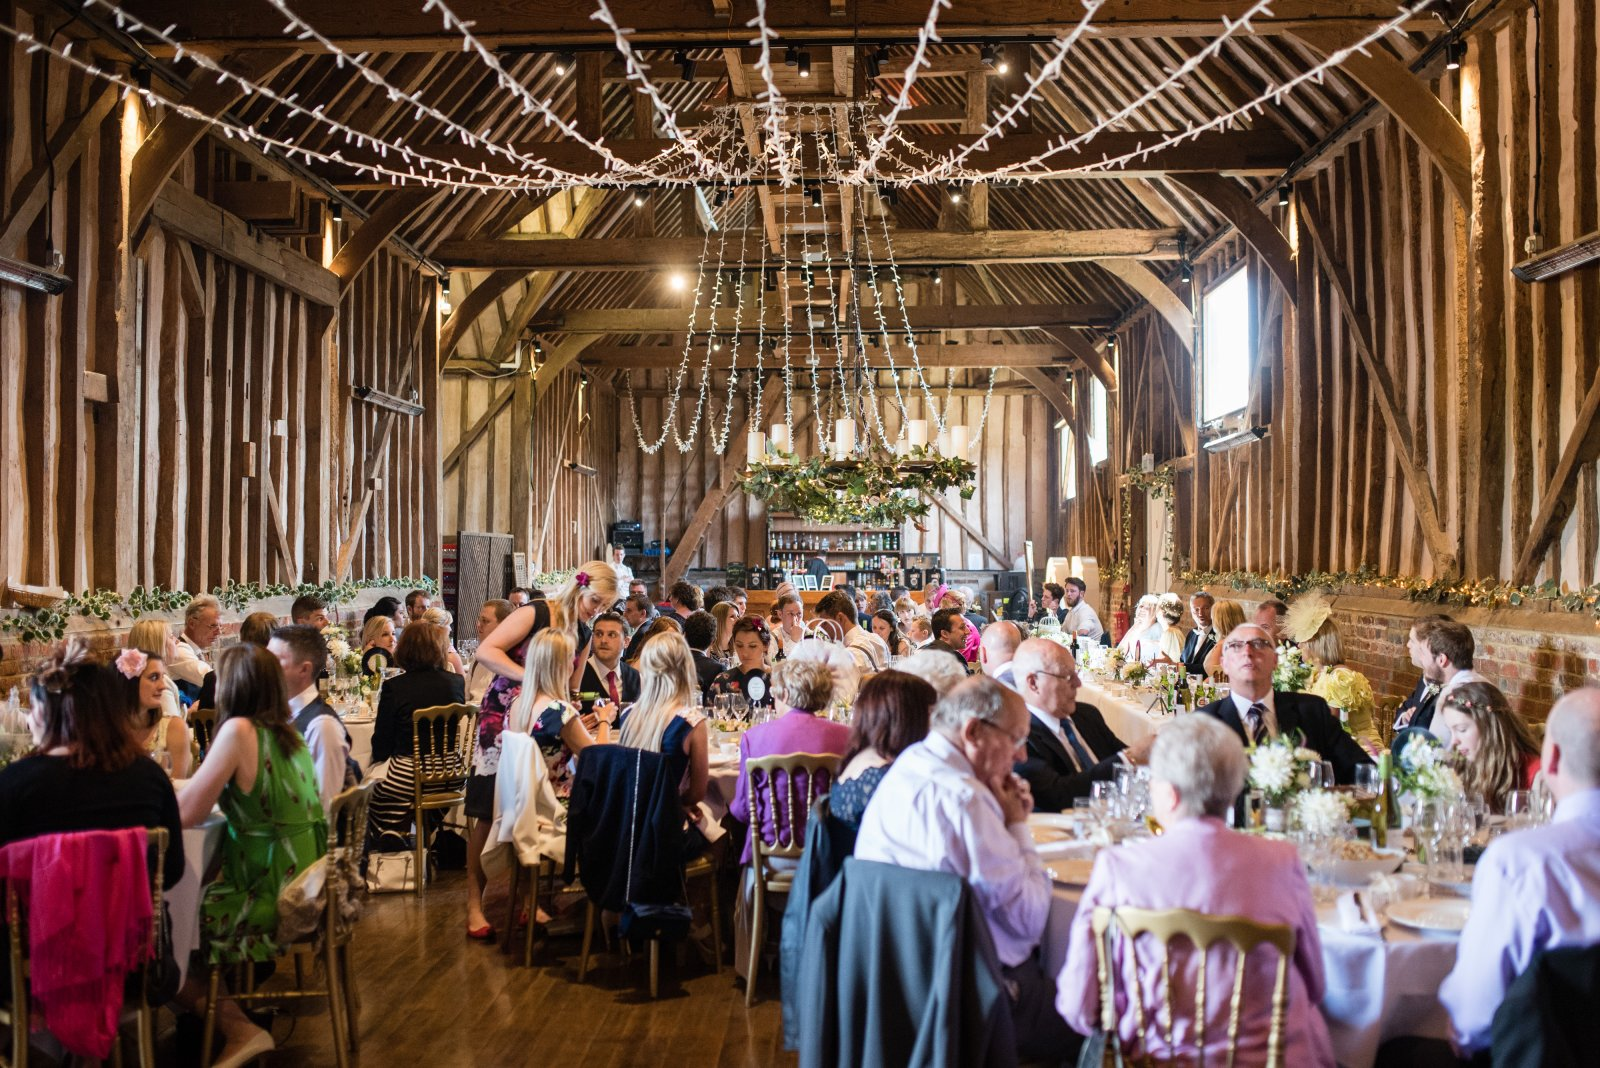 Lillibrook Manor and barns berkshire wedding venue